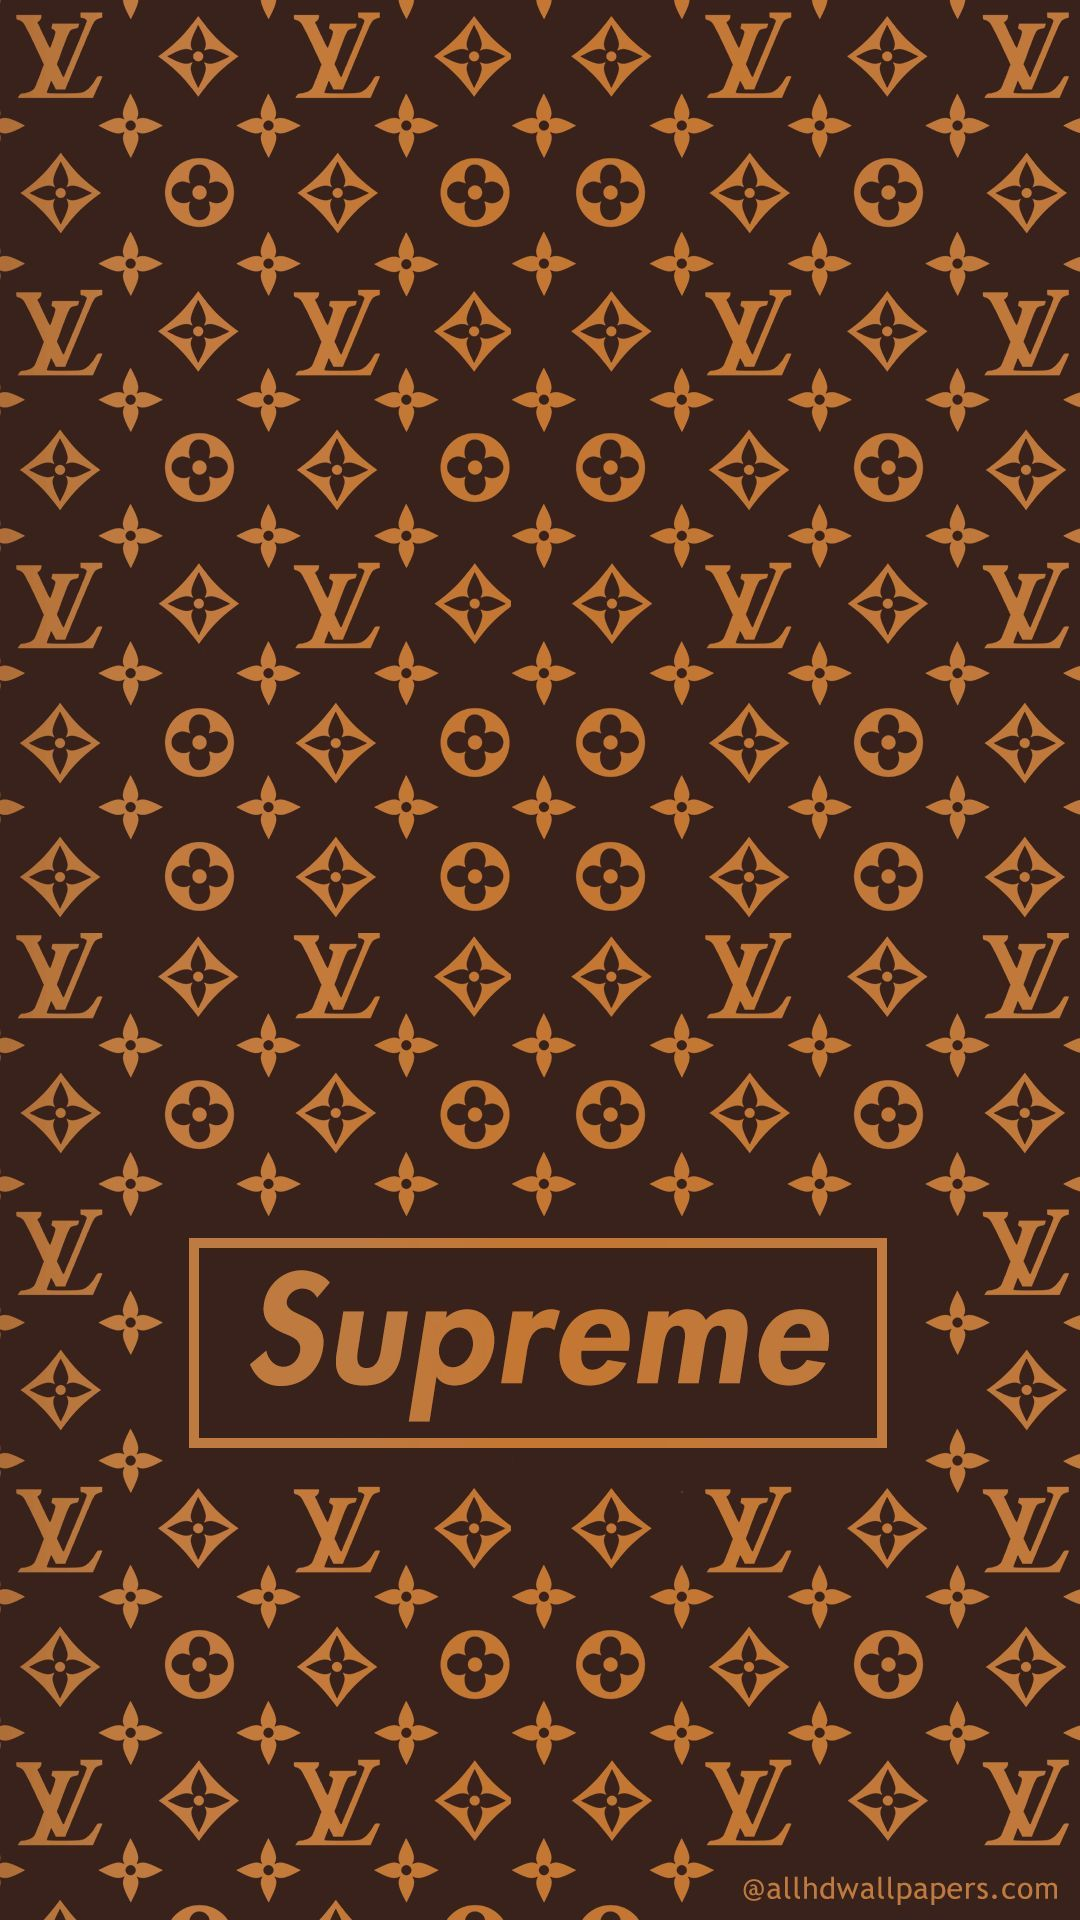 Supreme X Louis Vuitton En 2019 Fond D Ecran Telephone